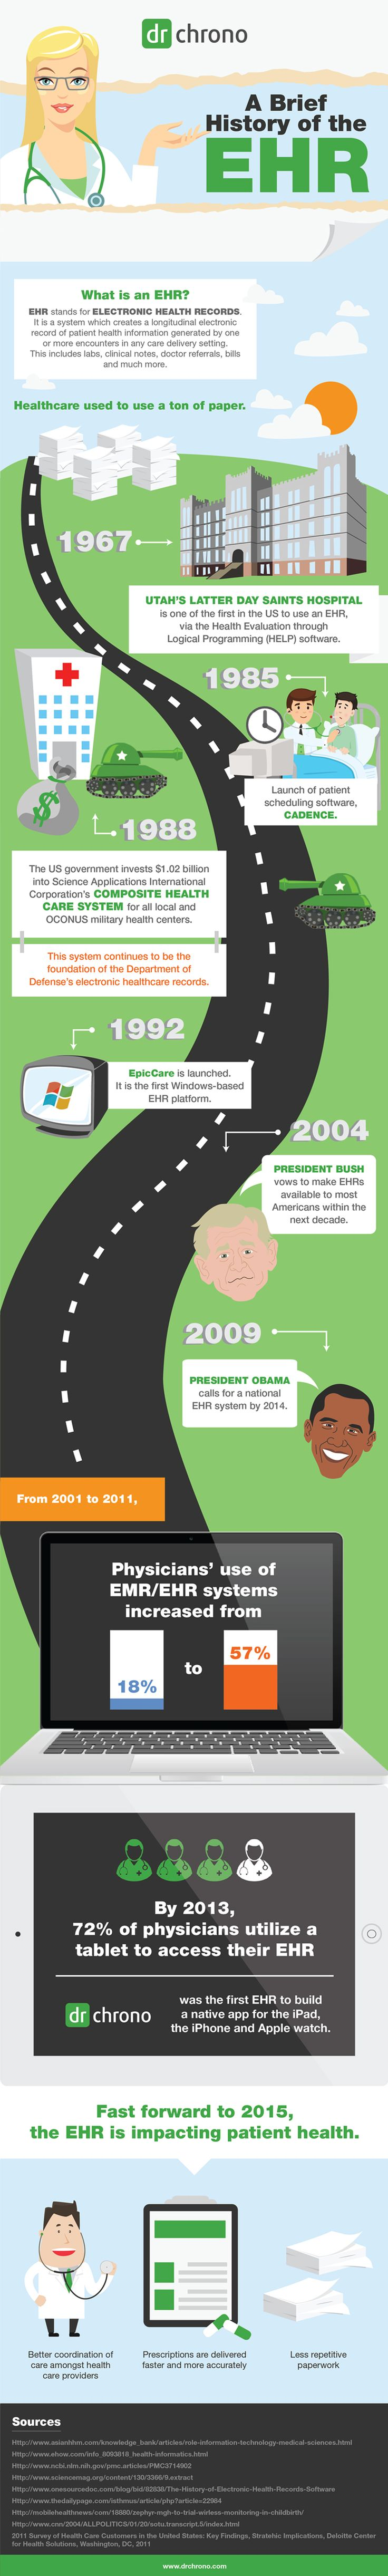 History of EHR (Electronic Health Record)